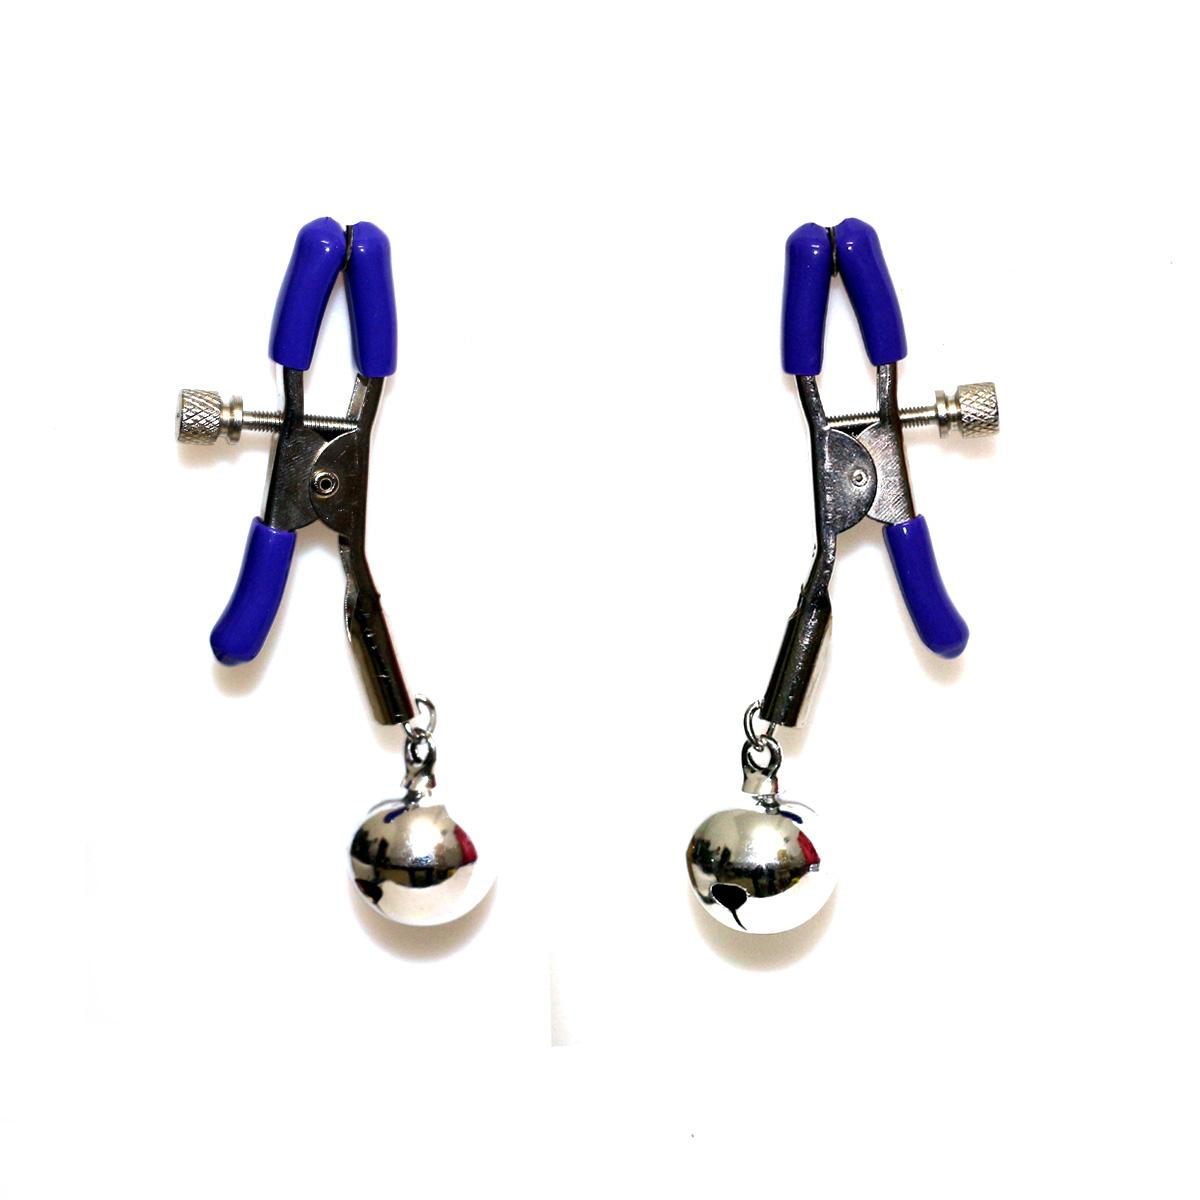 Metal bell Milk Breast Clip Slaves Nipple Clamps Sexy Metal Breast Clips Flirting Teasing BDSM Adult Sex Toys for Women